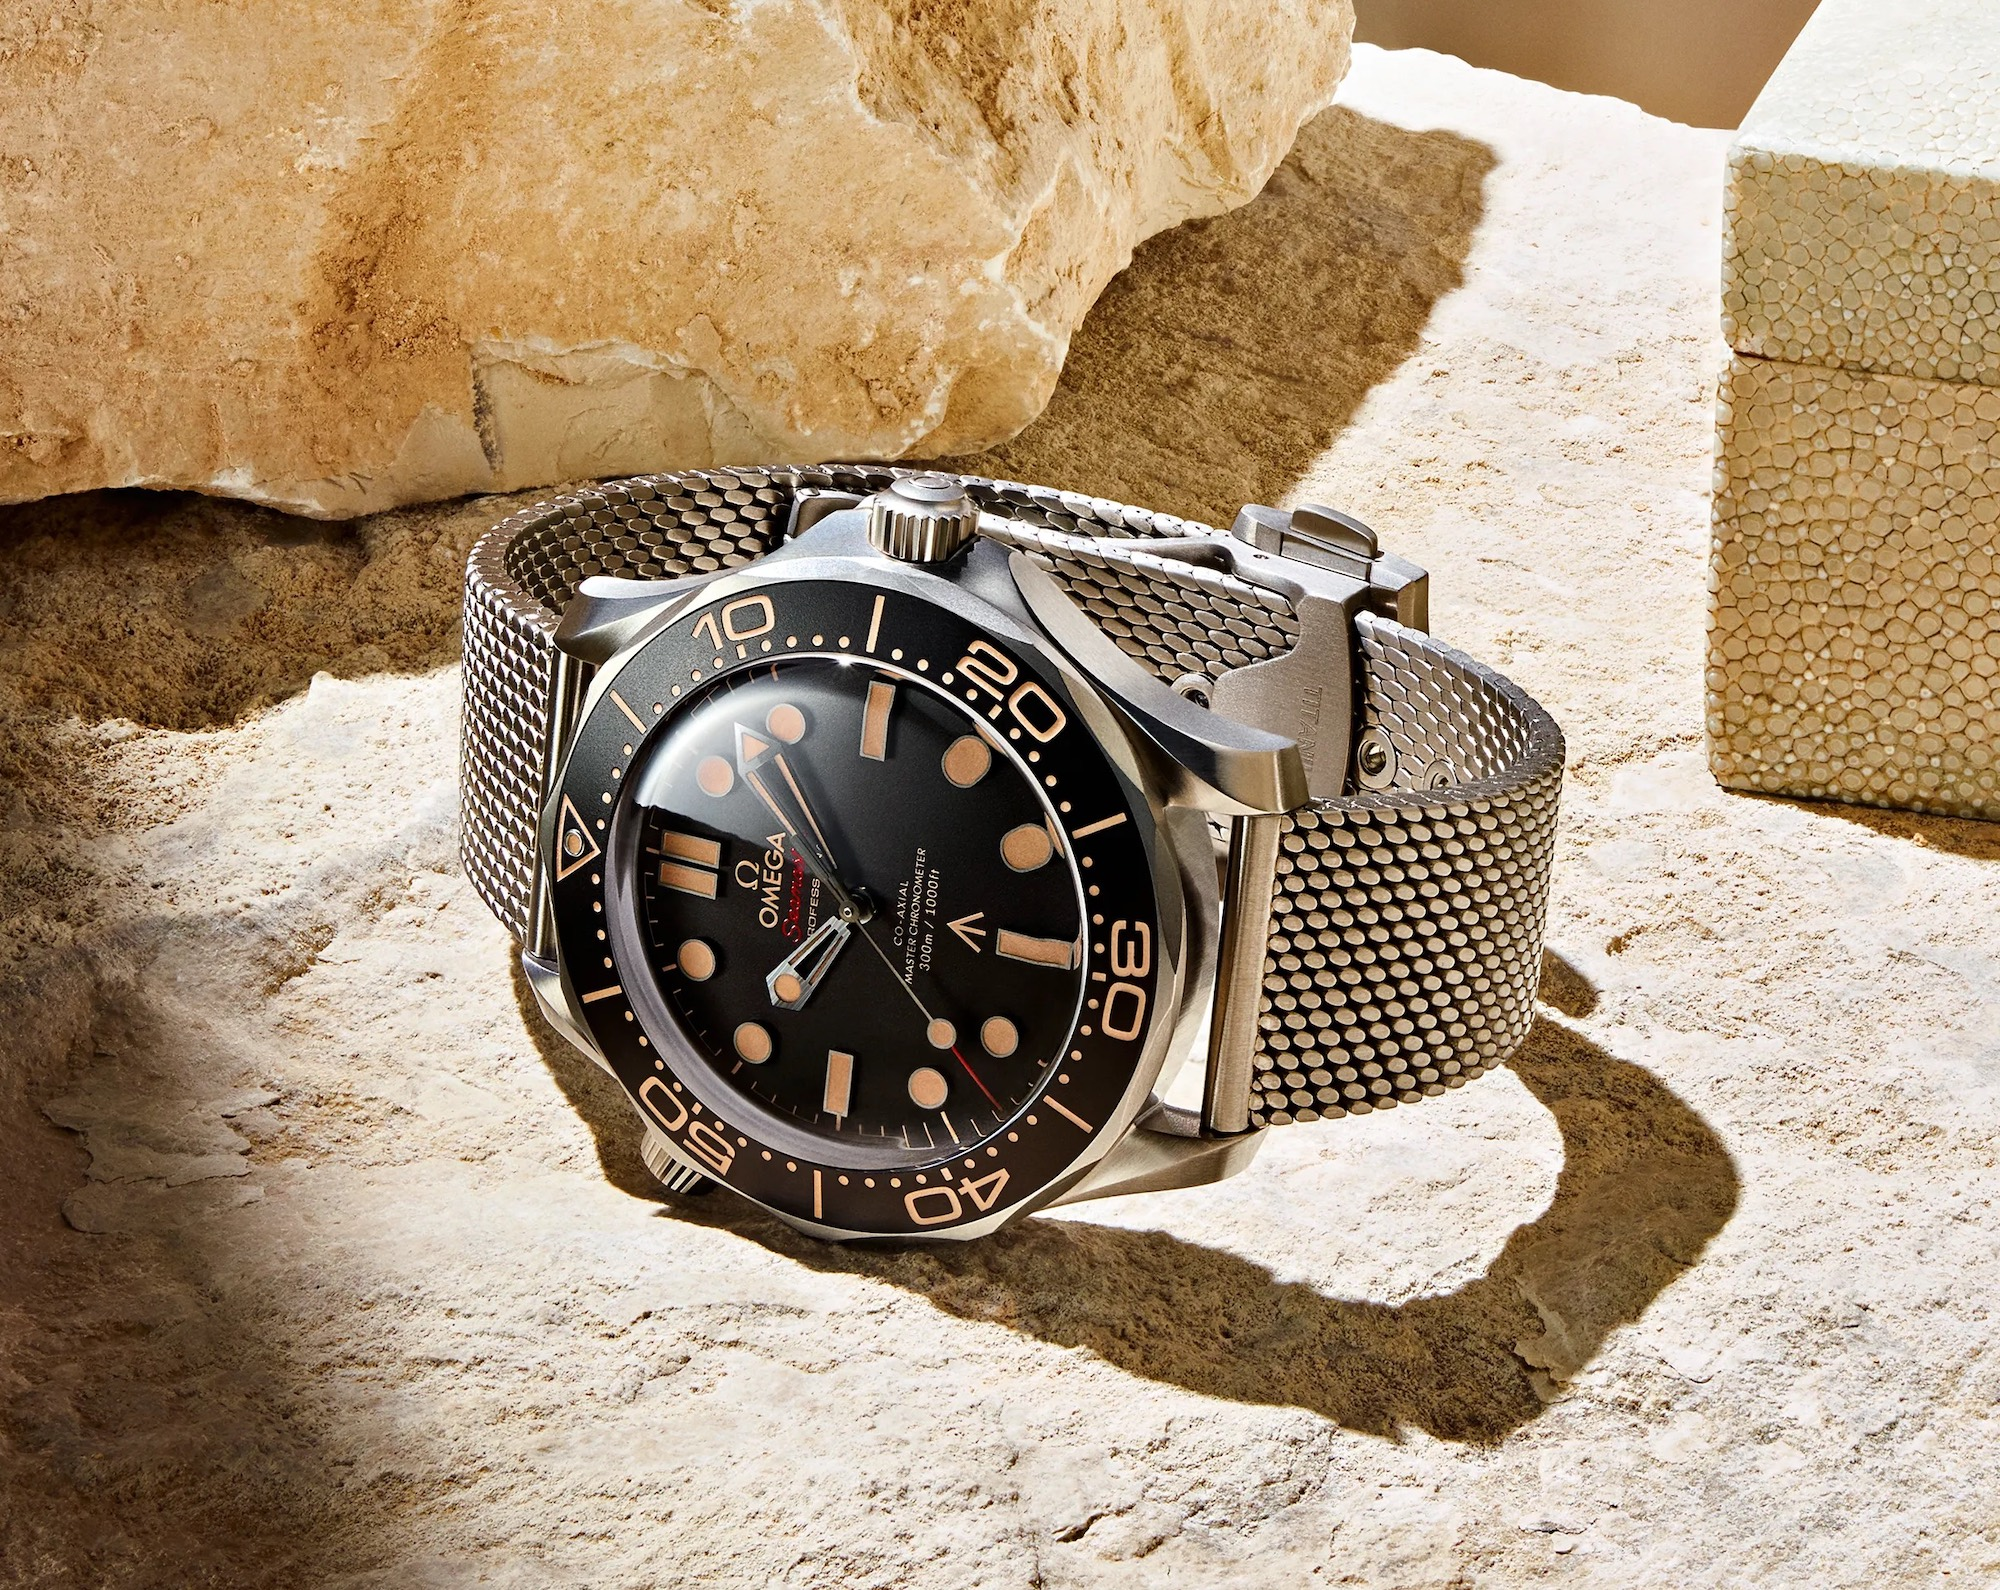 omega seamaster diver 300m co-axial master chronometer 42mm titanium 007 Edition 210.90.42.20.01.001 No Time To Die 2021 James Bond